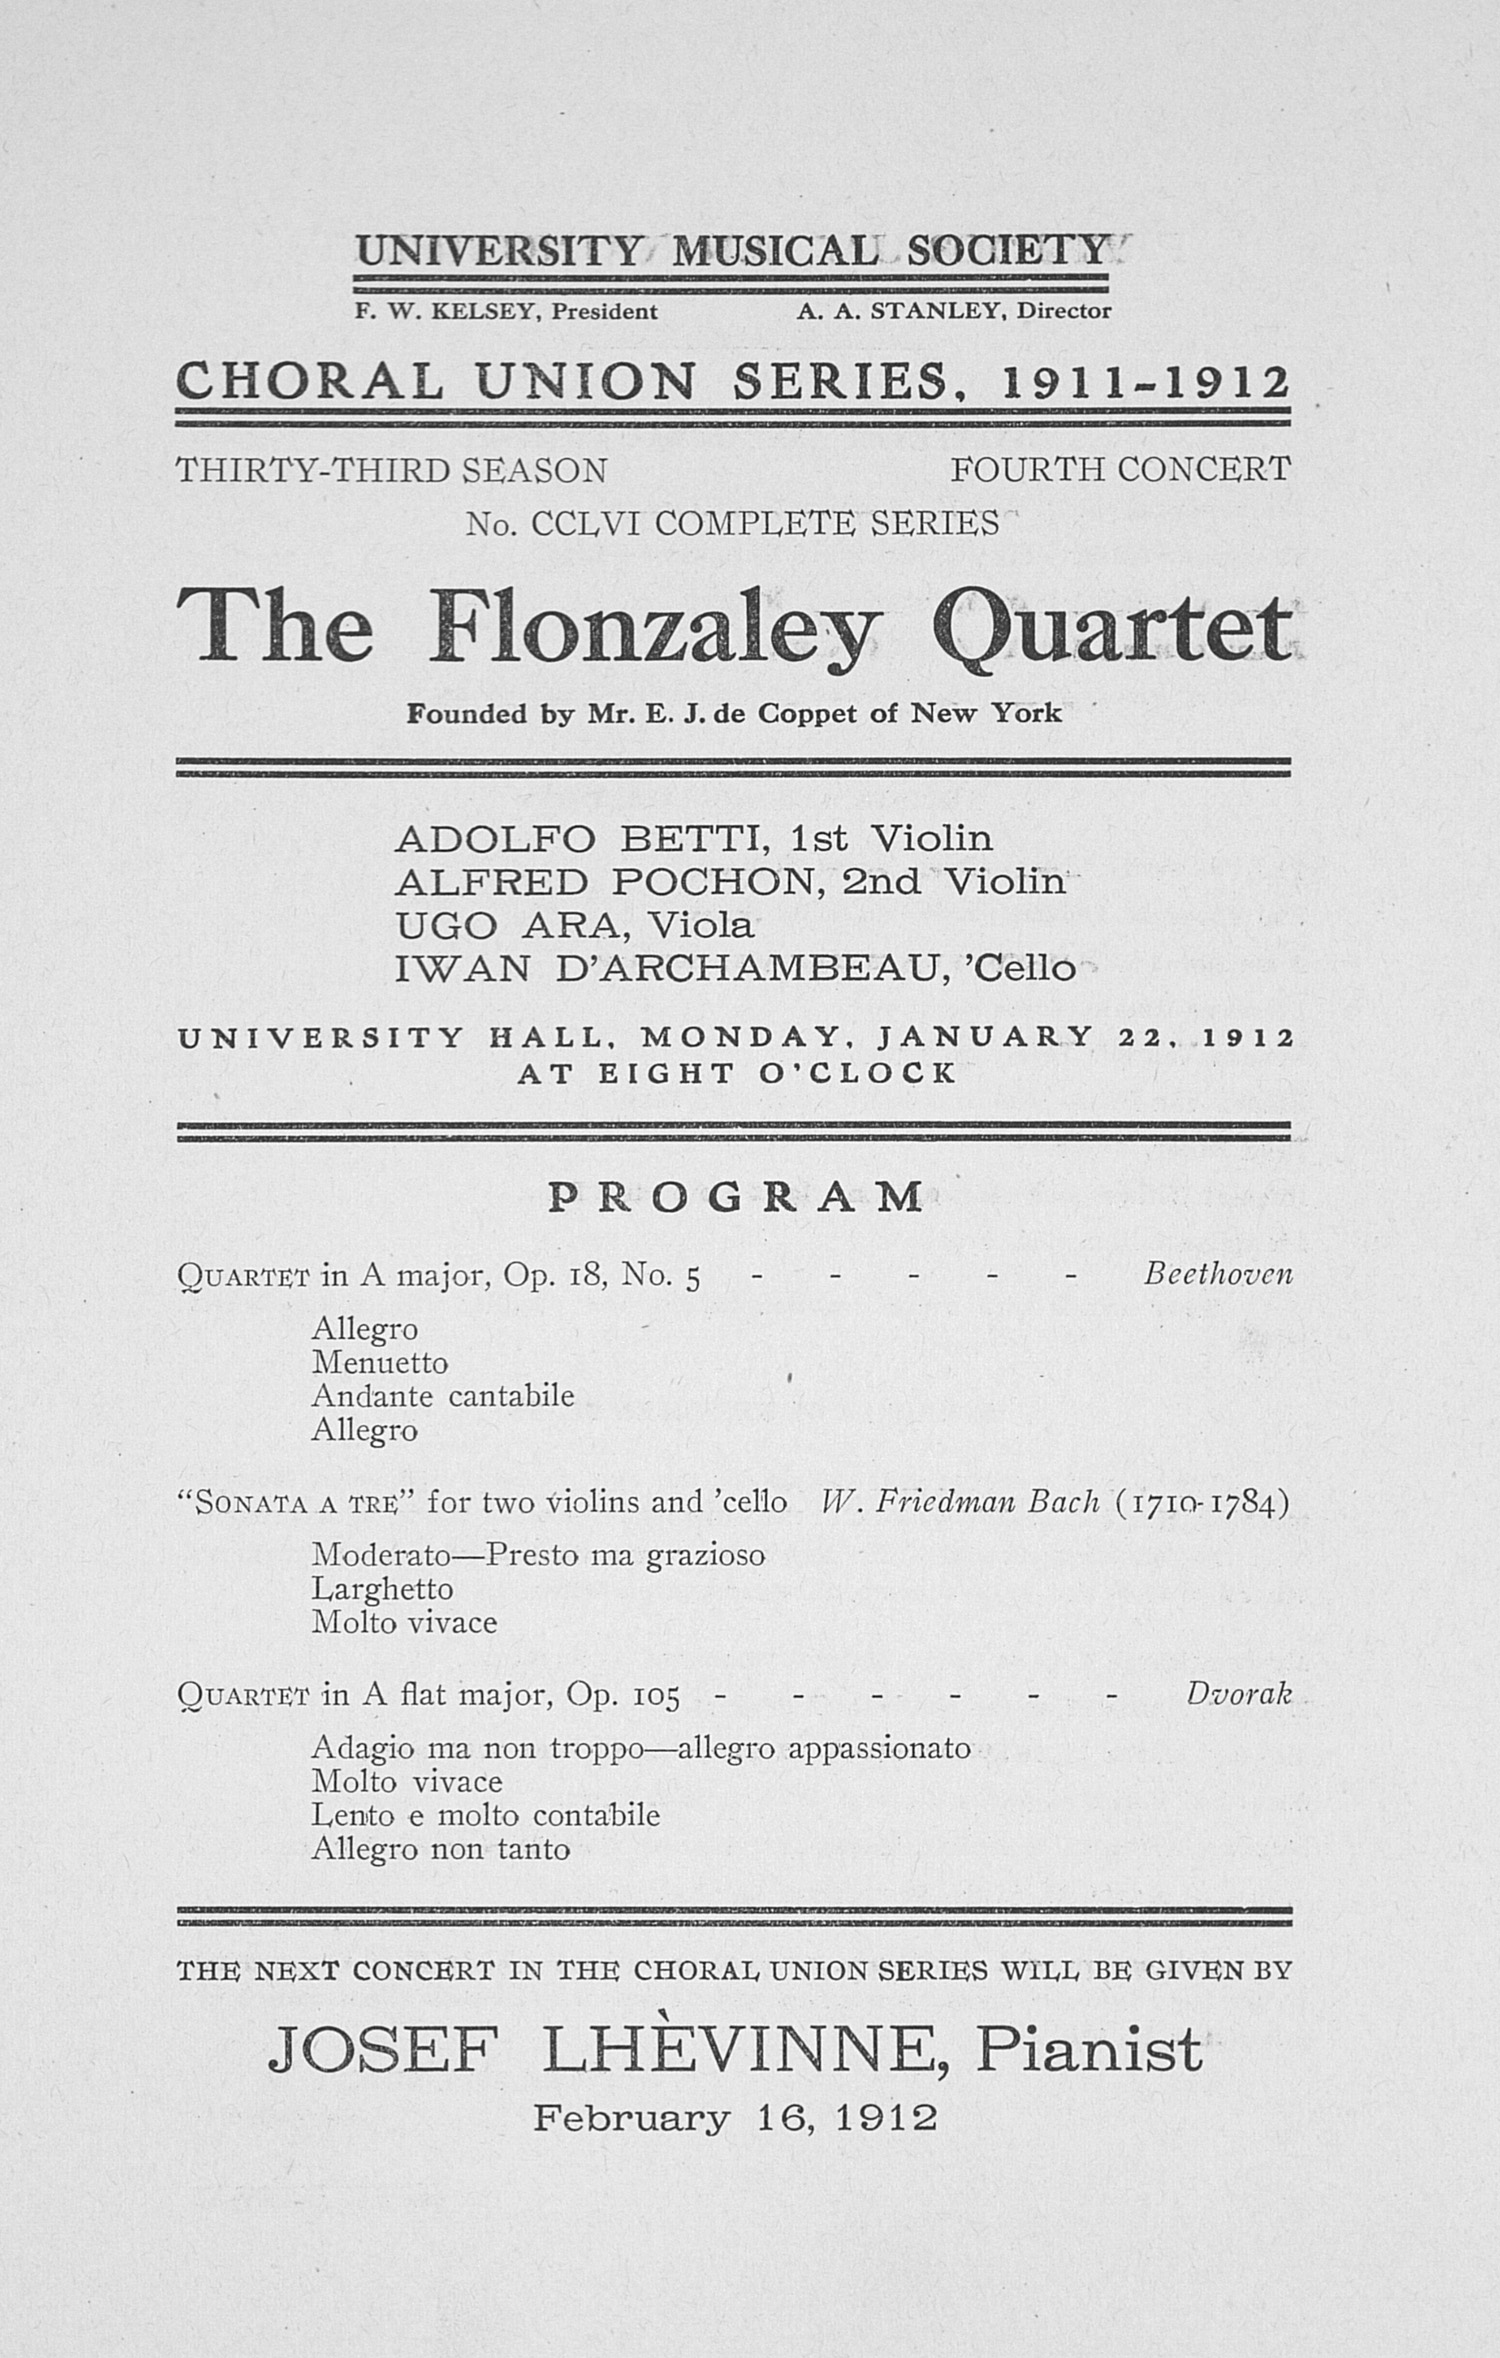 UMS Concert Program, January 22, 1912: Choral Union Series -- The Flonzaley Quartet image